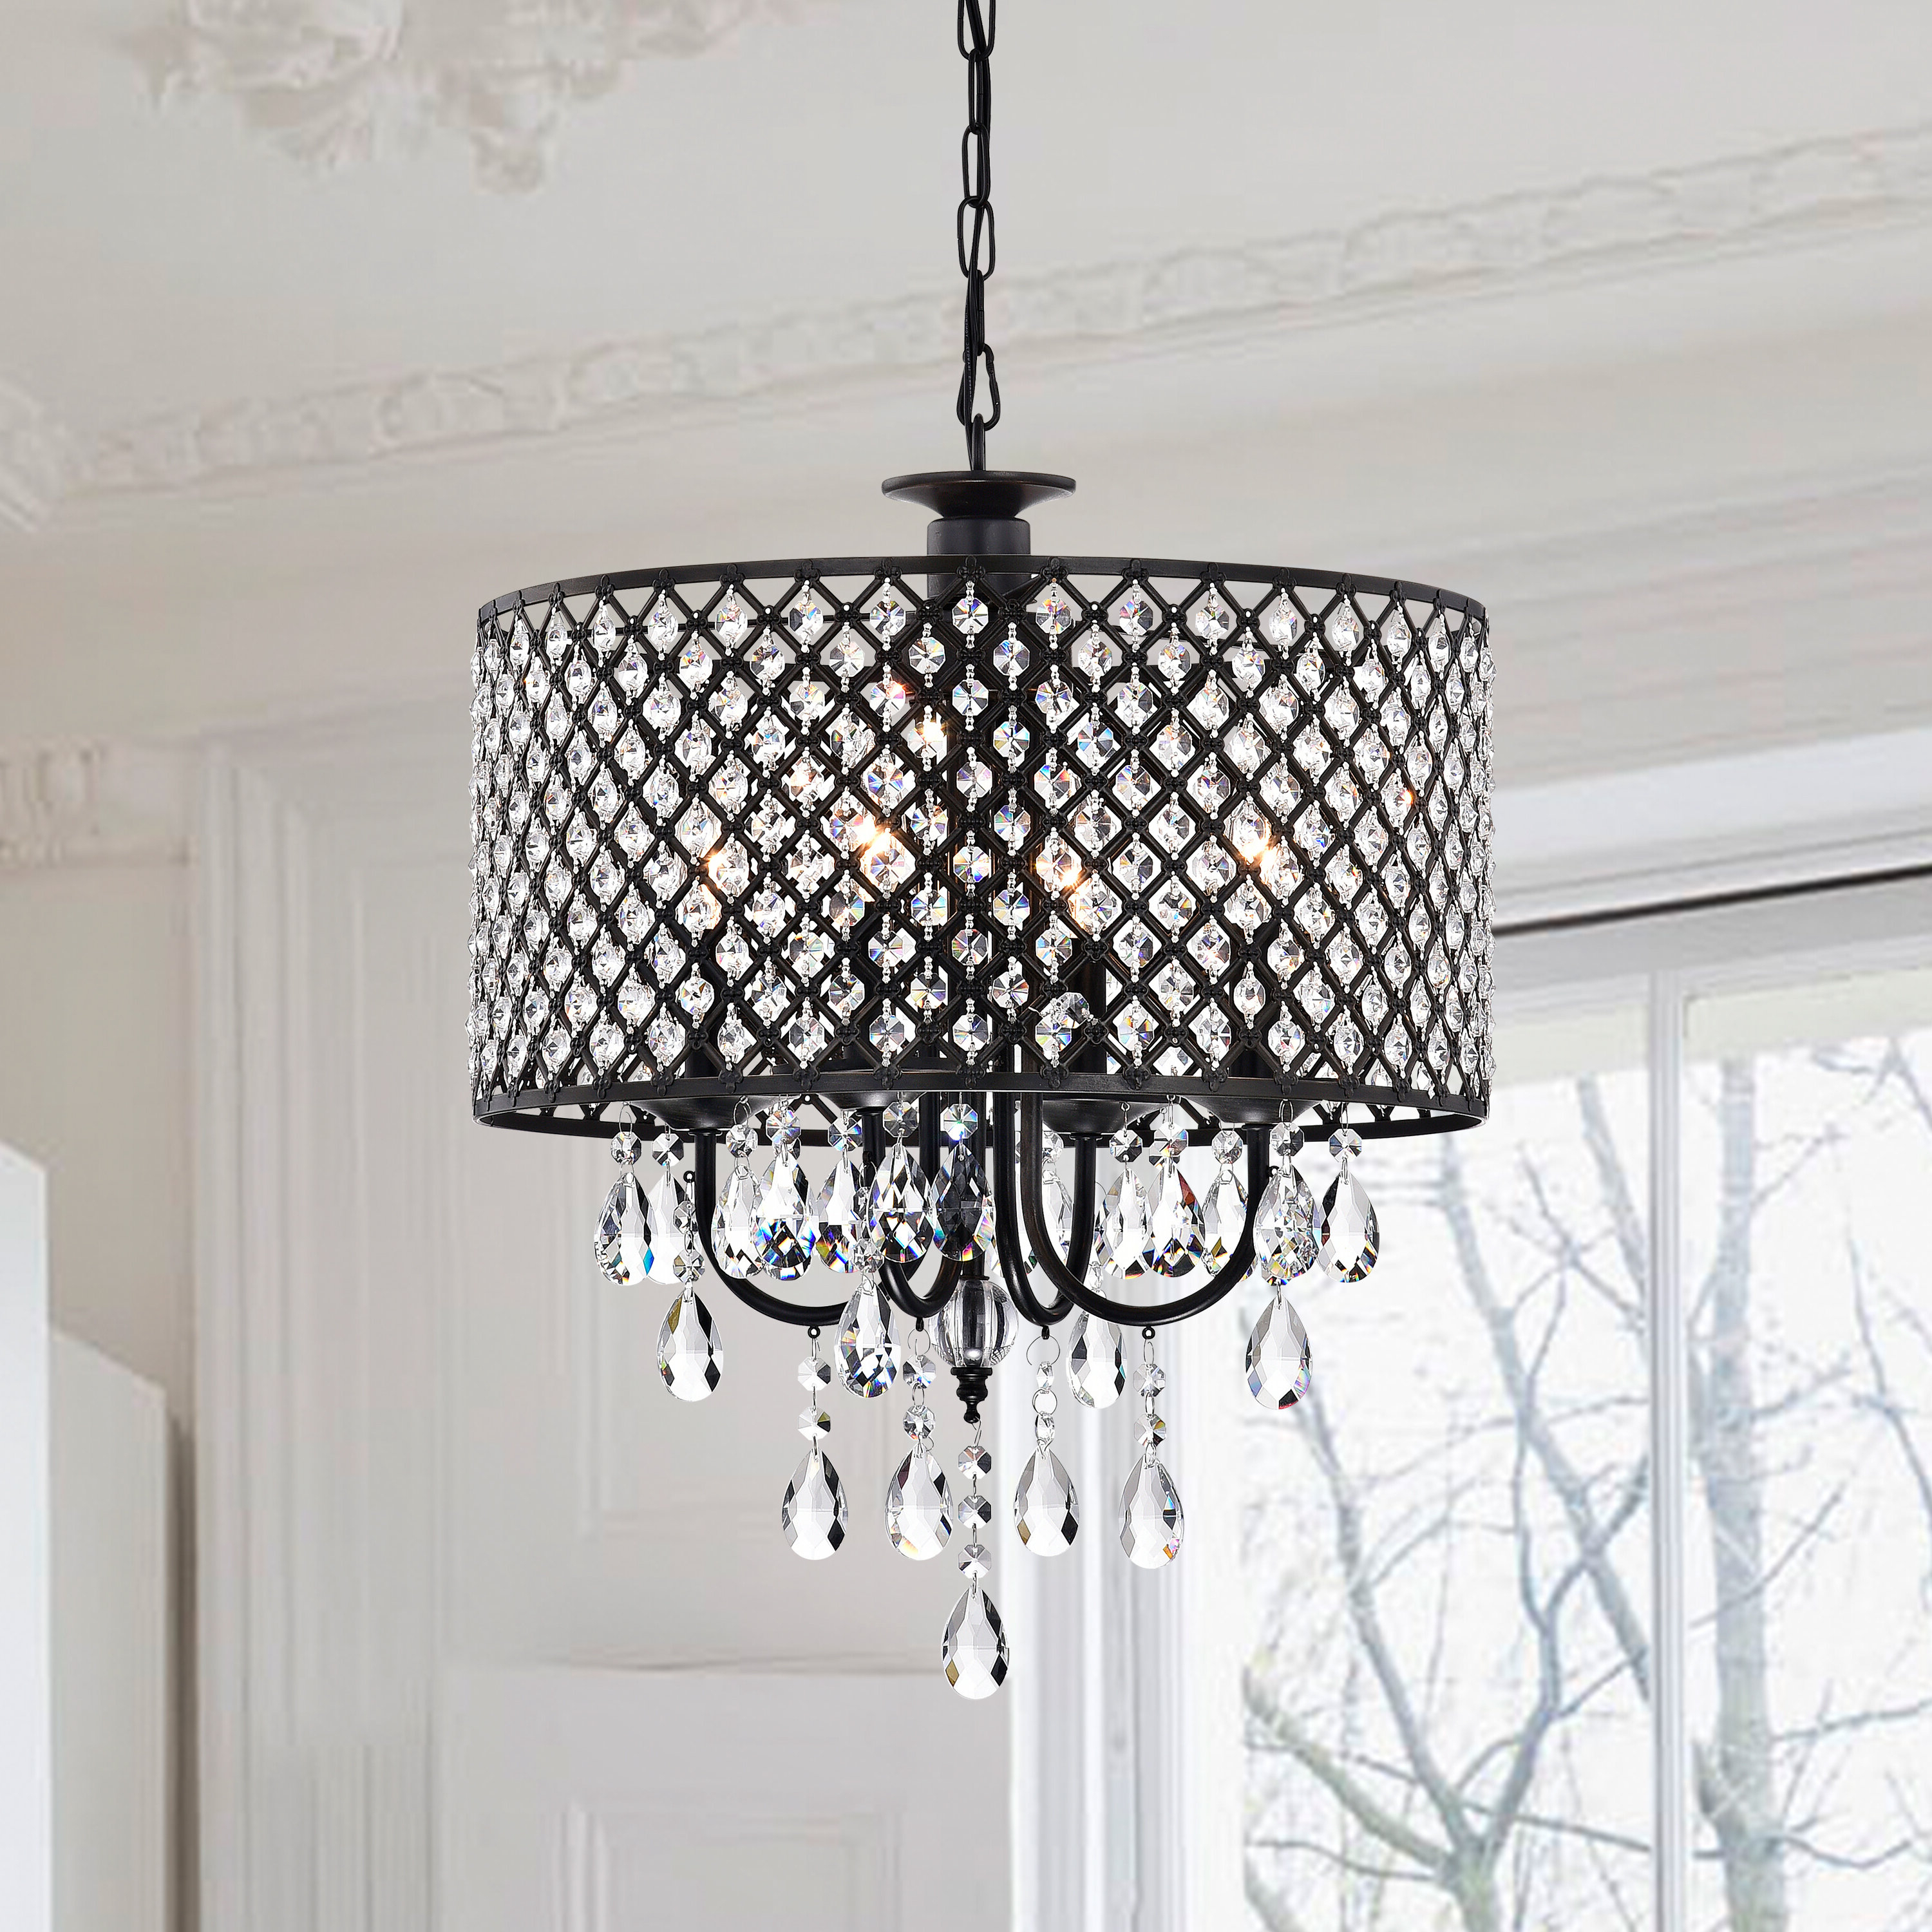 Most Popular Gisselle 4 Light Drum Chandelier Intended For Jill 4 Light Drum Chandeliers (View 17 of 20)